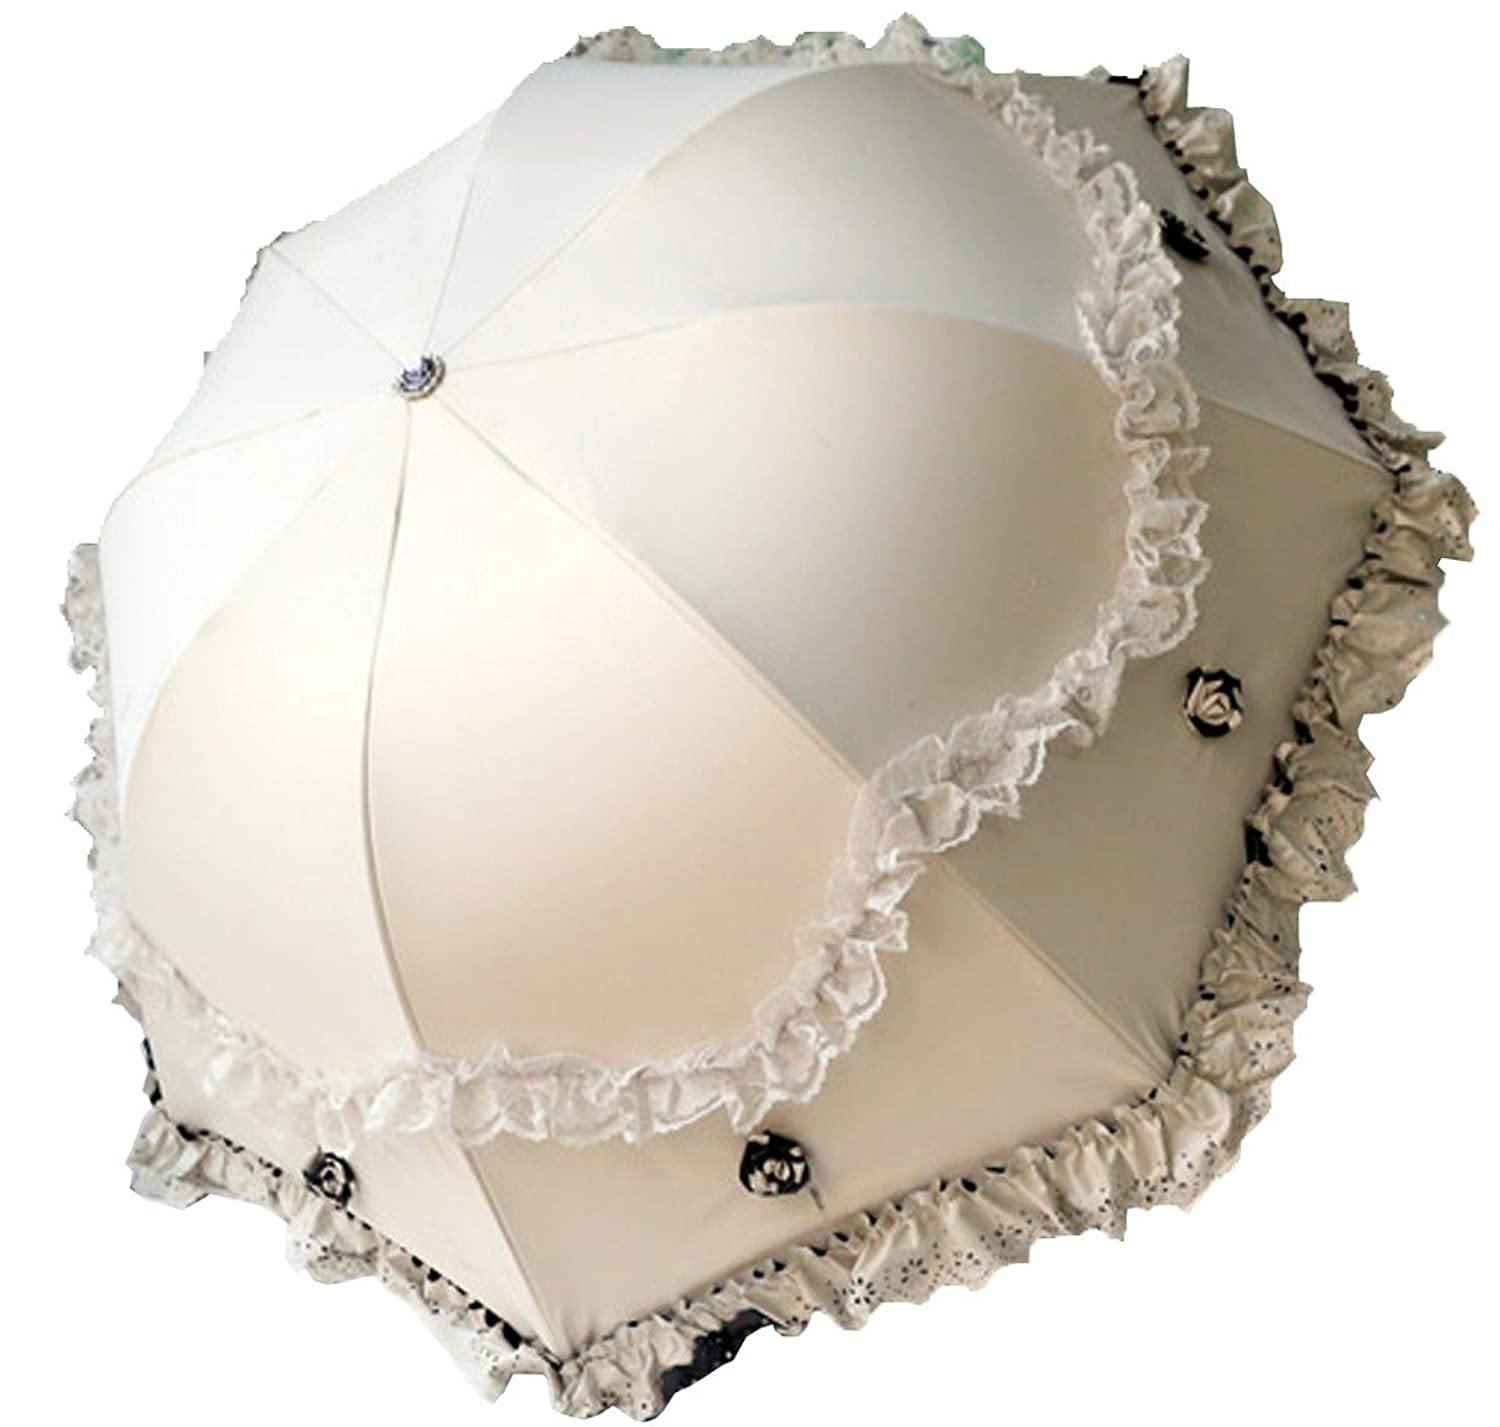 5 Essential Victorian Costume Accessories Supergirl Women Parasol Travel Compact Lace Sunshade Anti-UV Windproof Rain Umbrella $28.99 AT vintagedancer.com